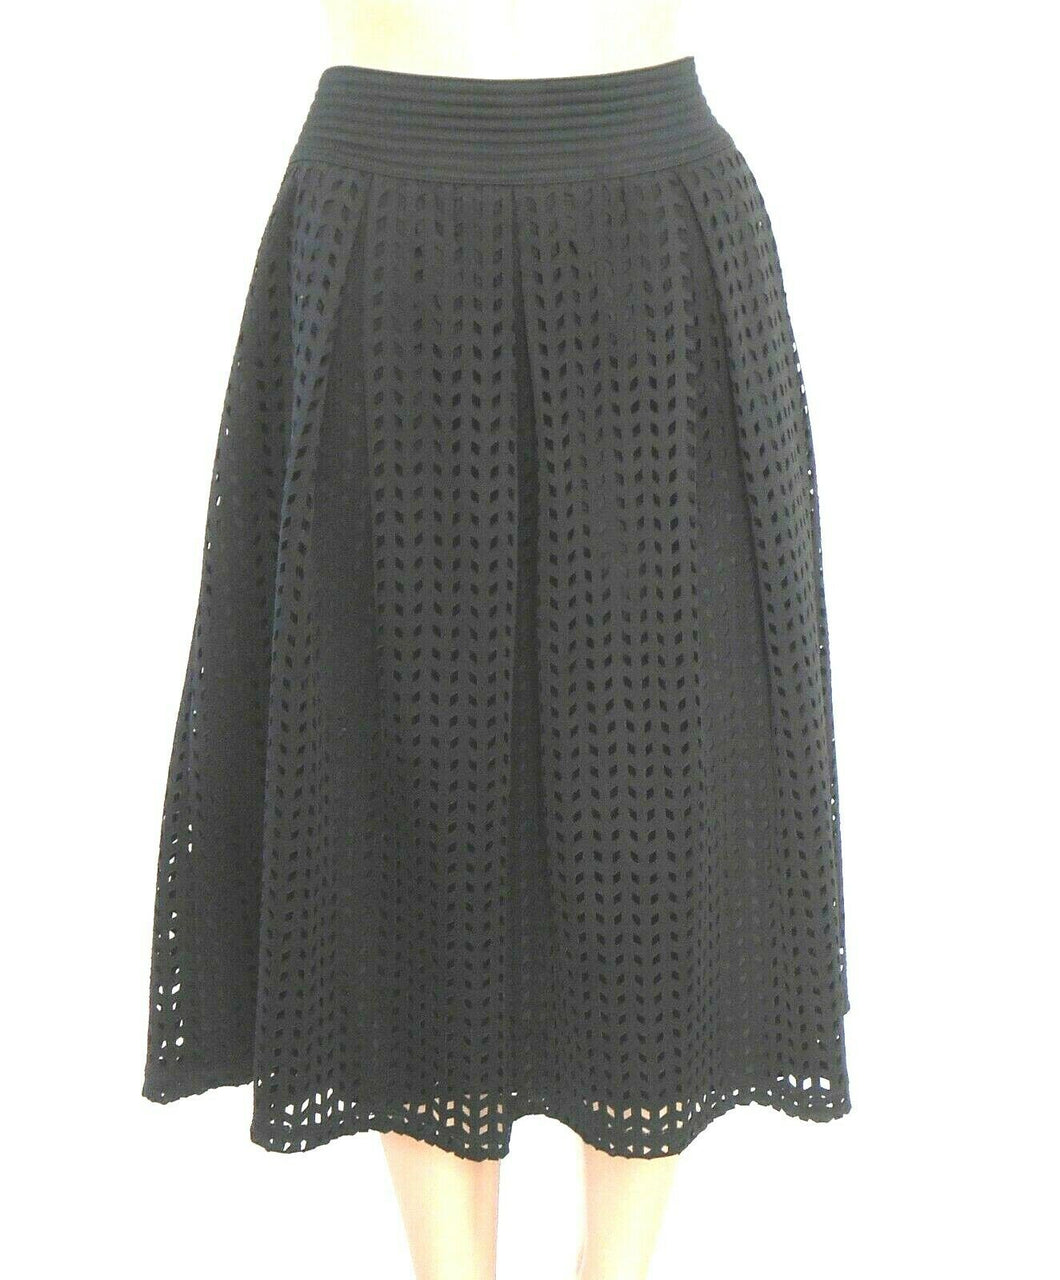 Maggie T black pleated skirt, day and after hours, sz. 16 as new - very chic